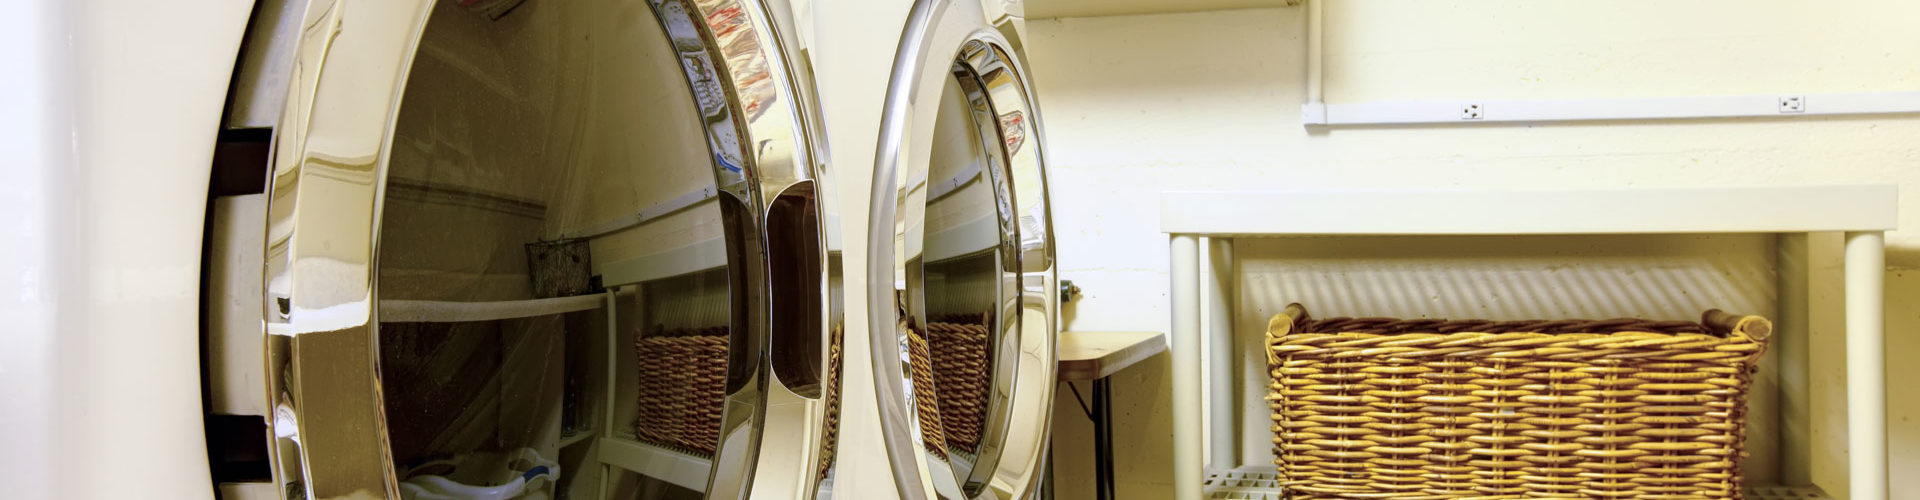 How to Organize Laundry Room - baskets and wall racks